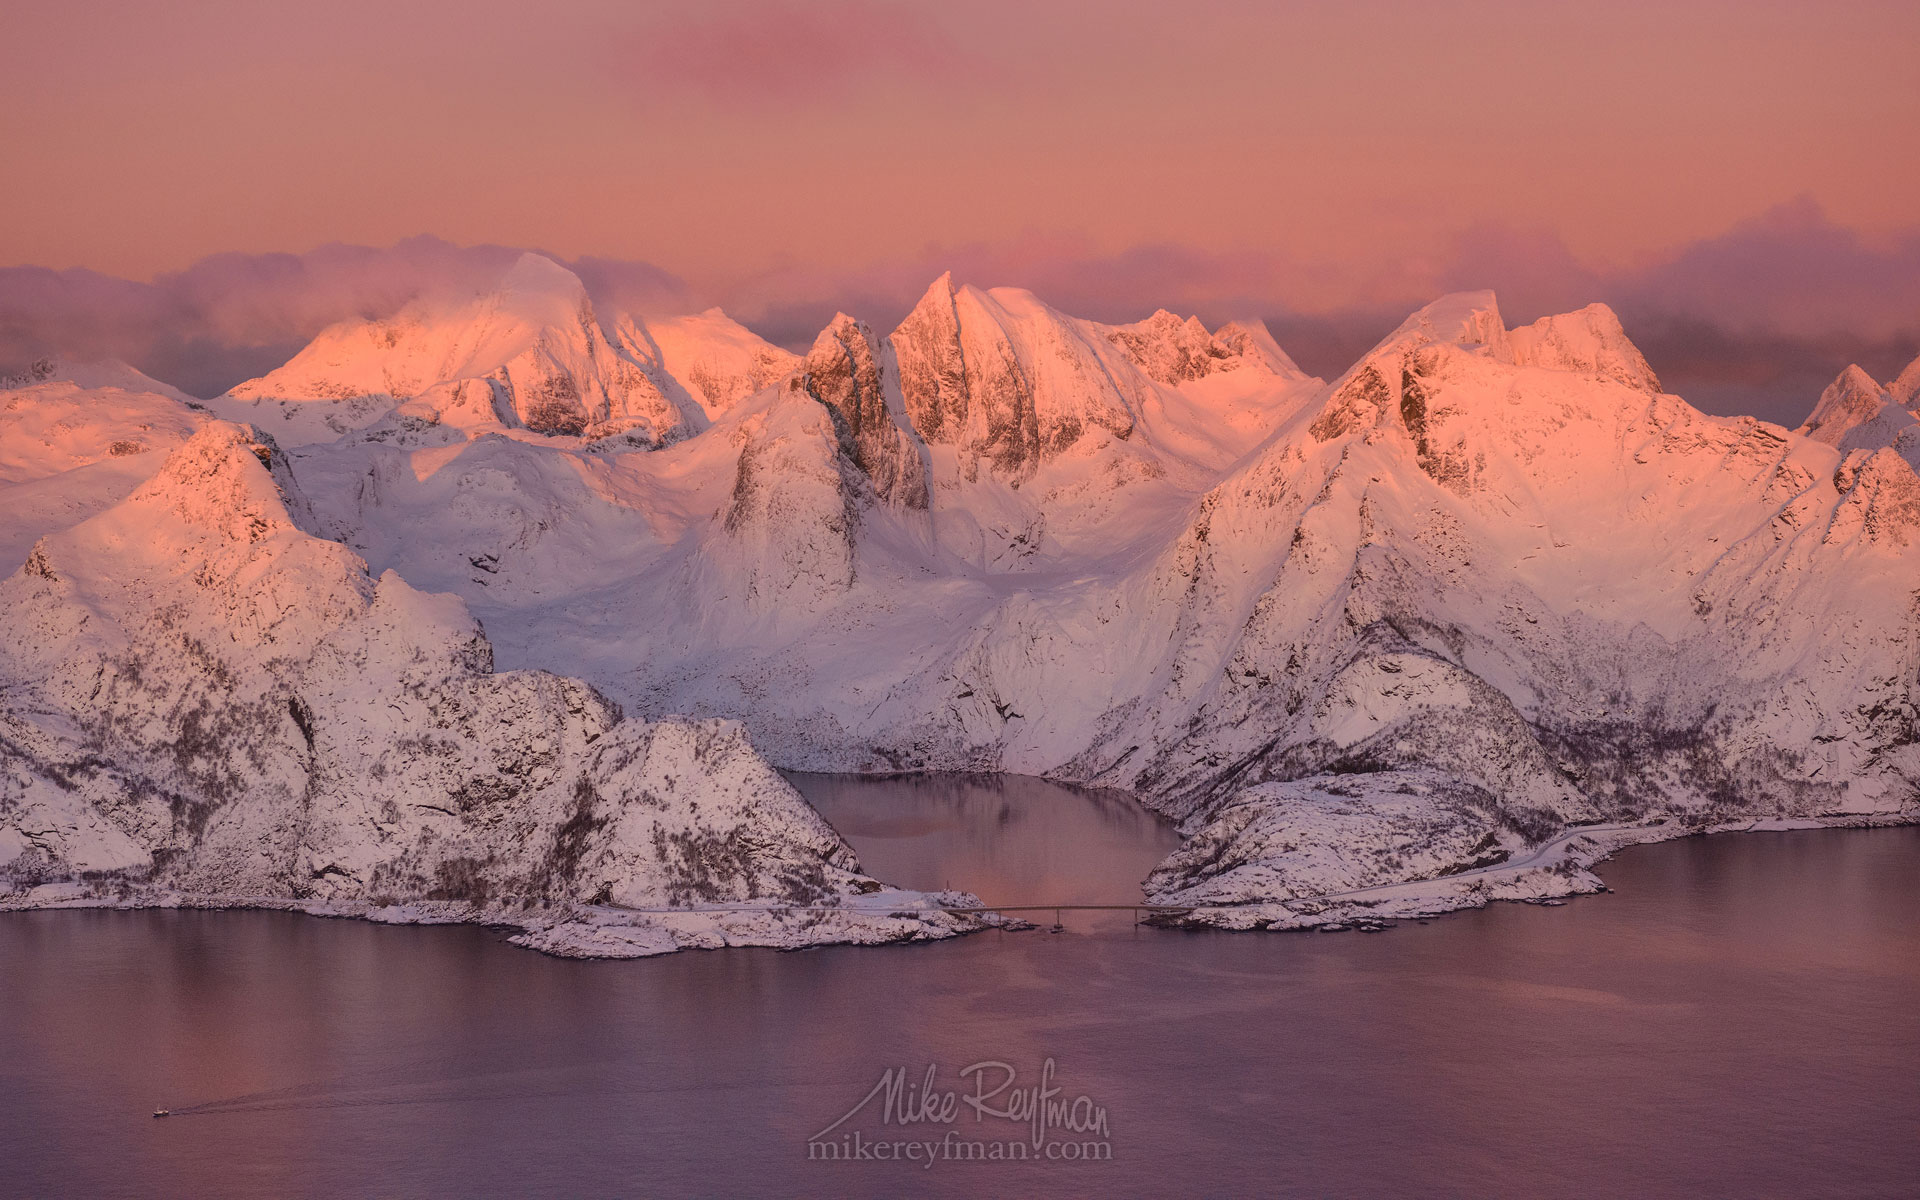 Aerial view of Lofoten archipelago at sunrise. Moskenesoya Island, Lofoten archipelago, Norway. LF-MRD1E1283-2 - Lofoten Archipelago in Winter, Arctic Norway - Mike Reyfman Photography